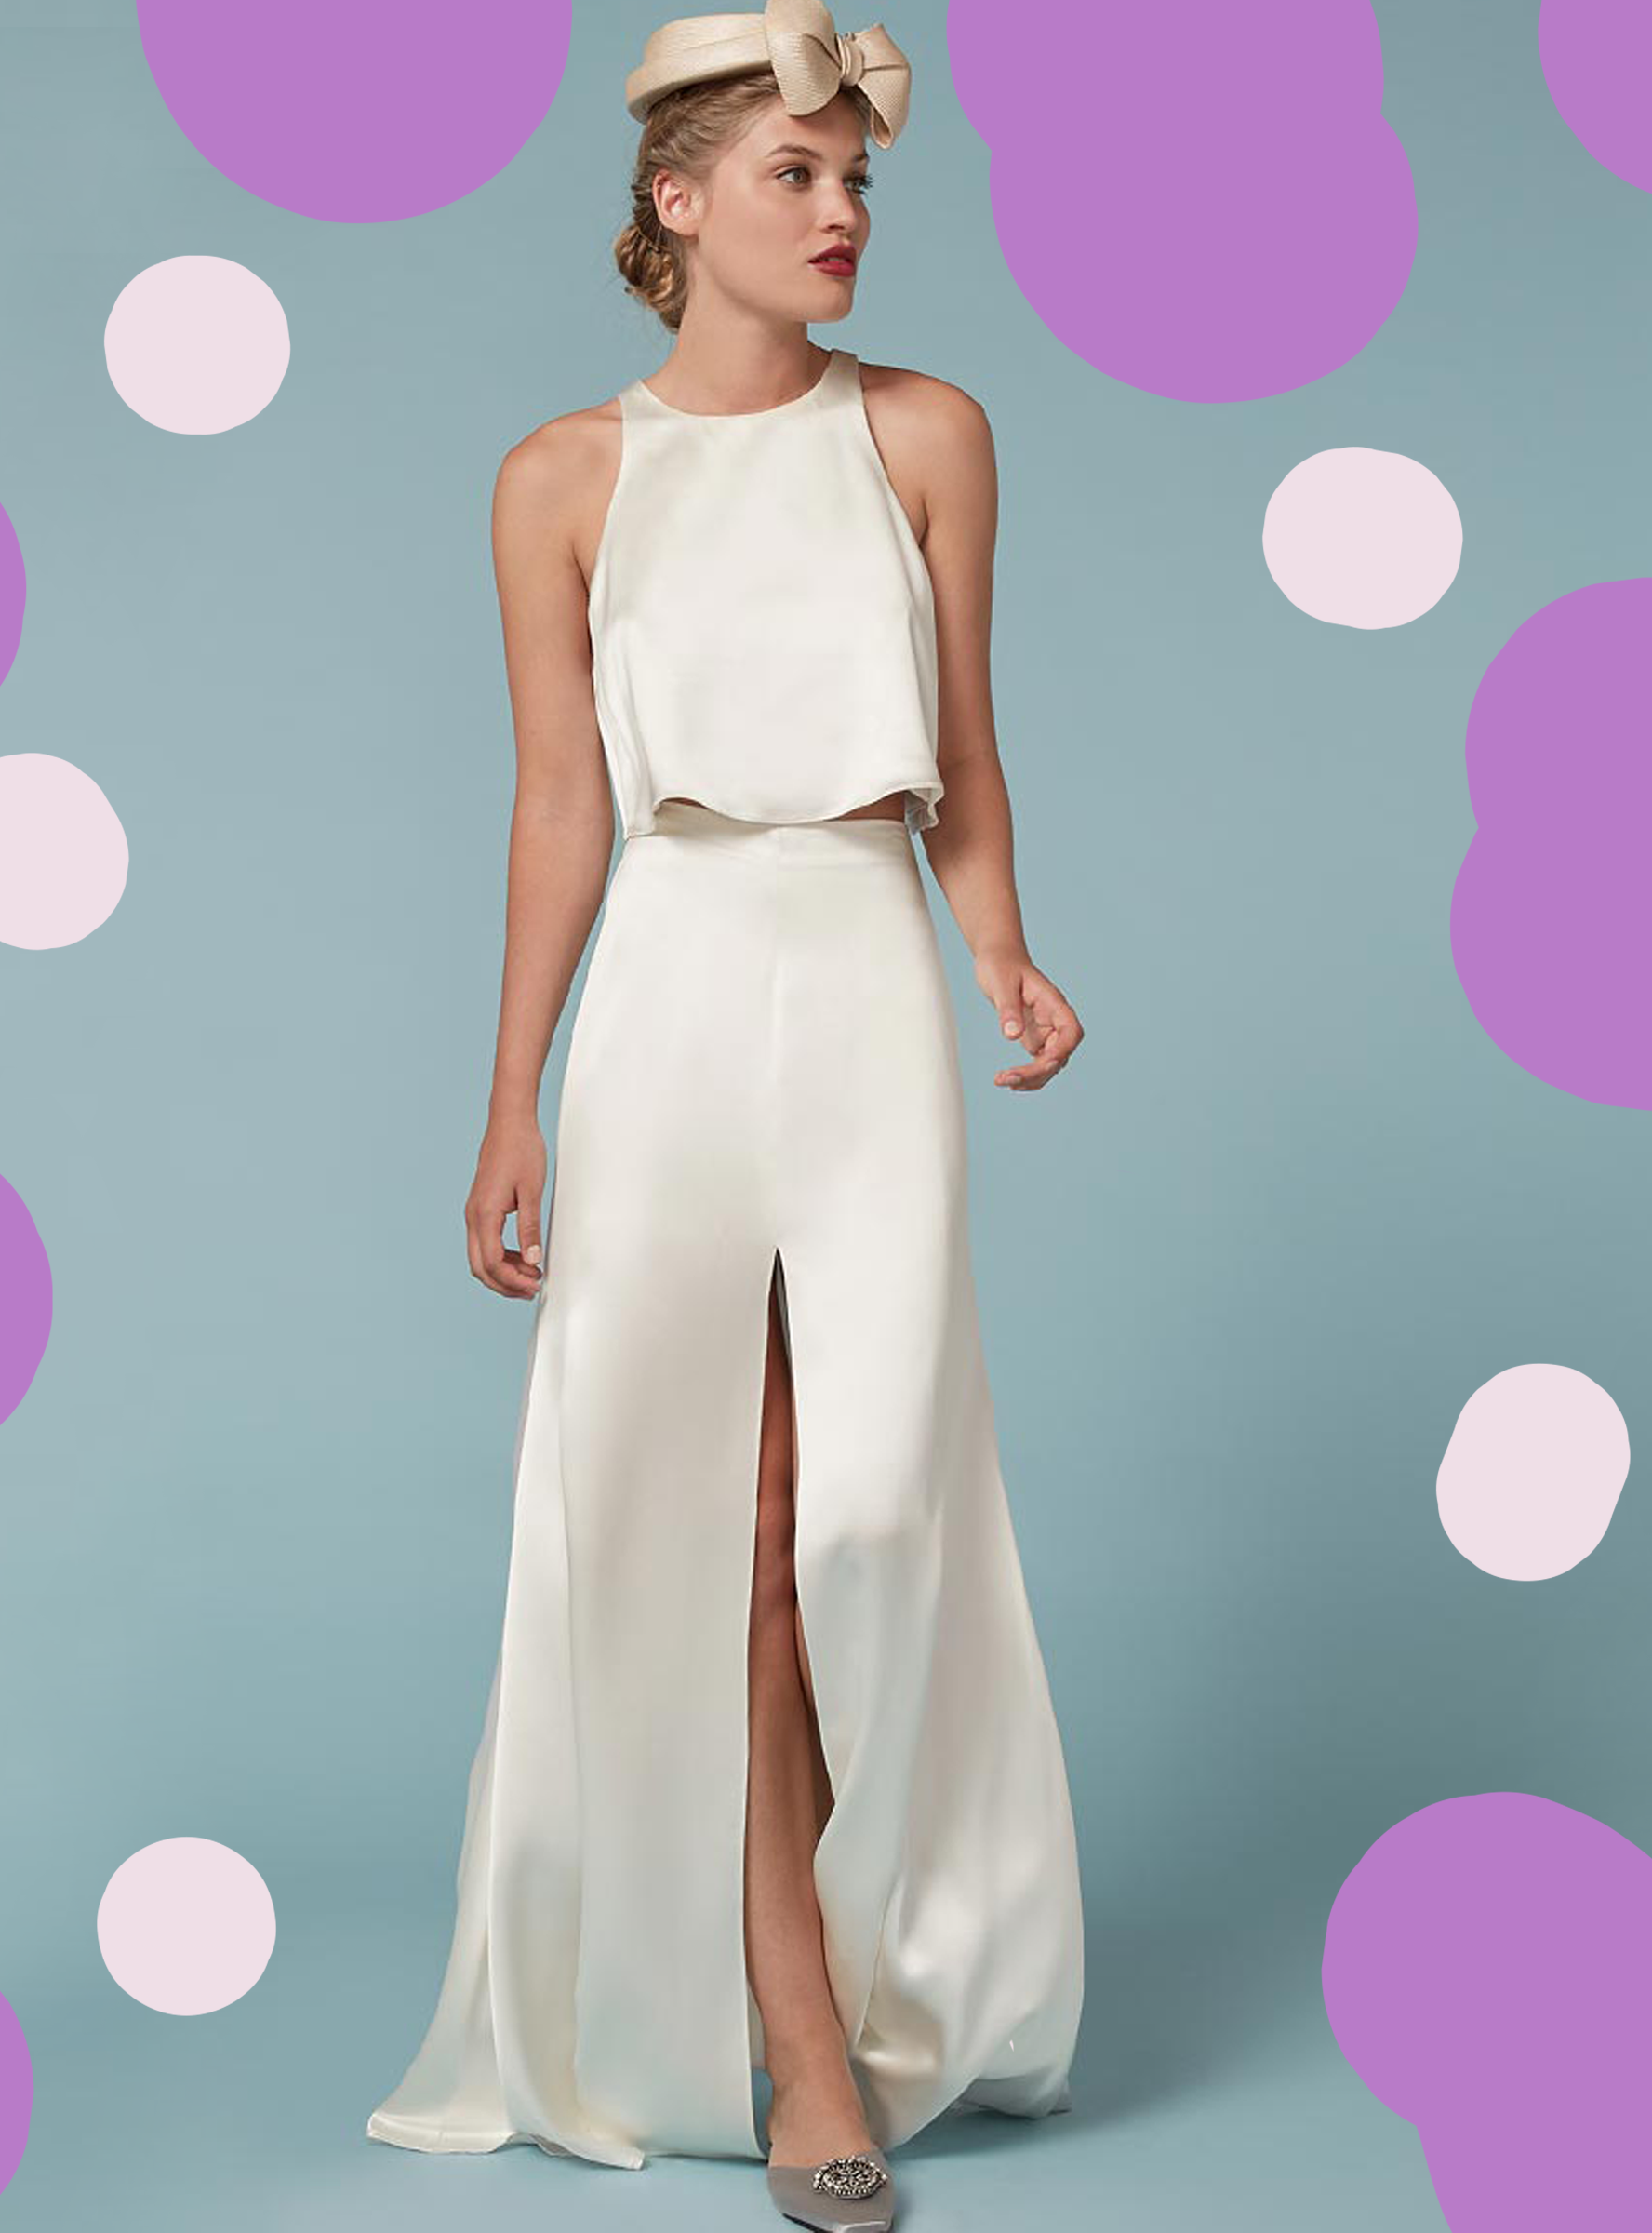 17 Non-Traditional Wedding Outfits For The Fashion-Forward Bride ...